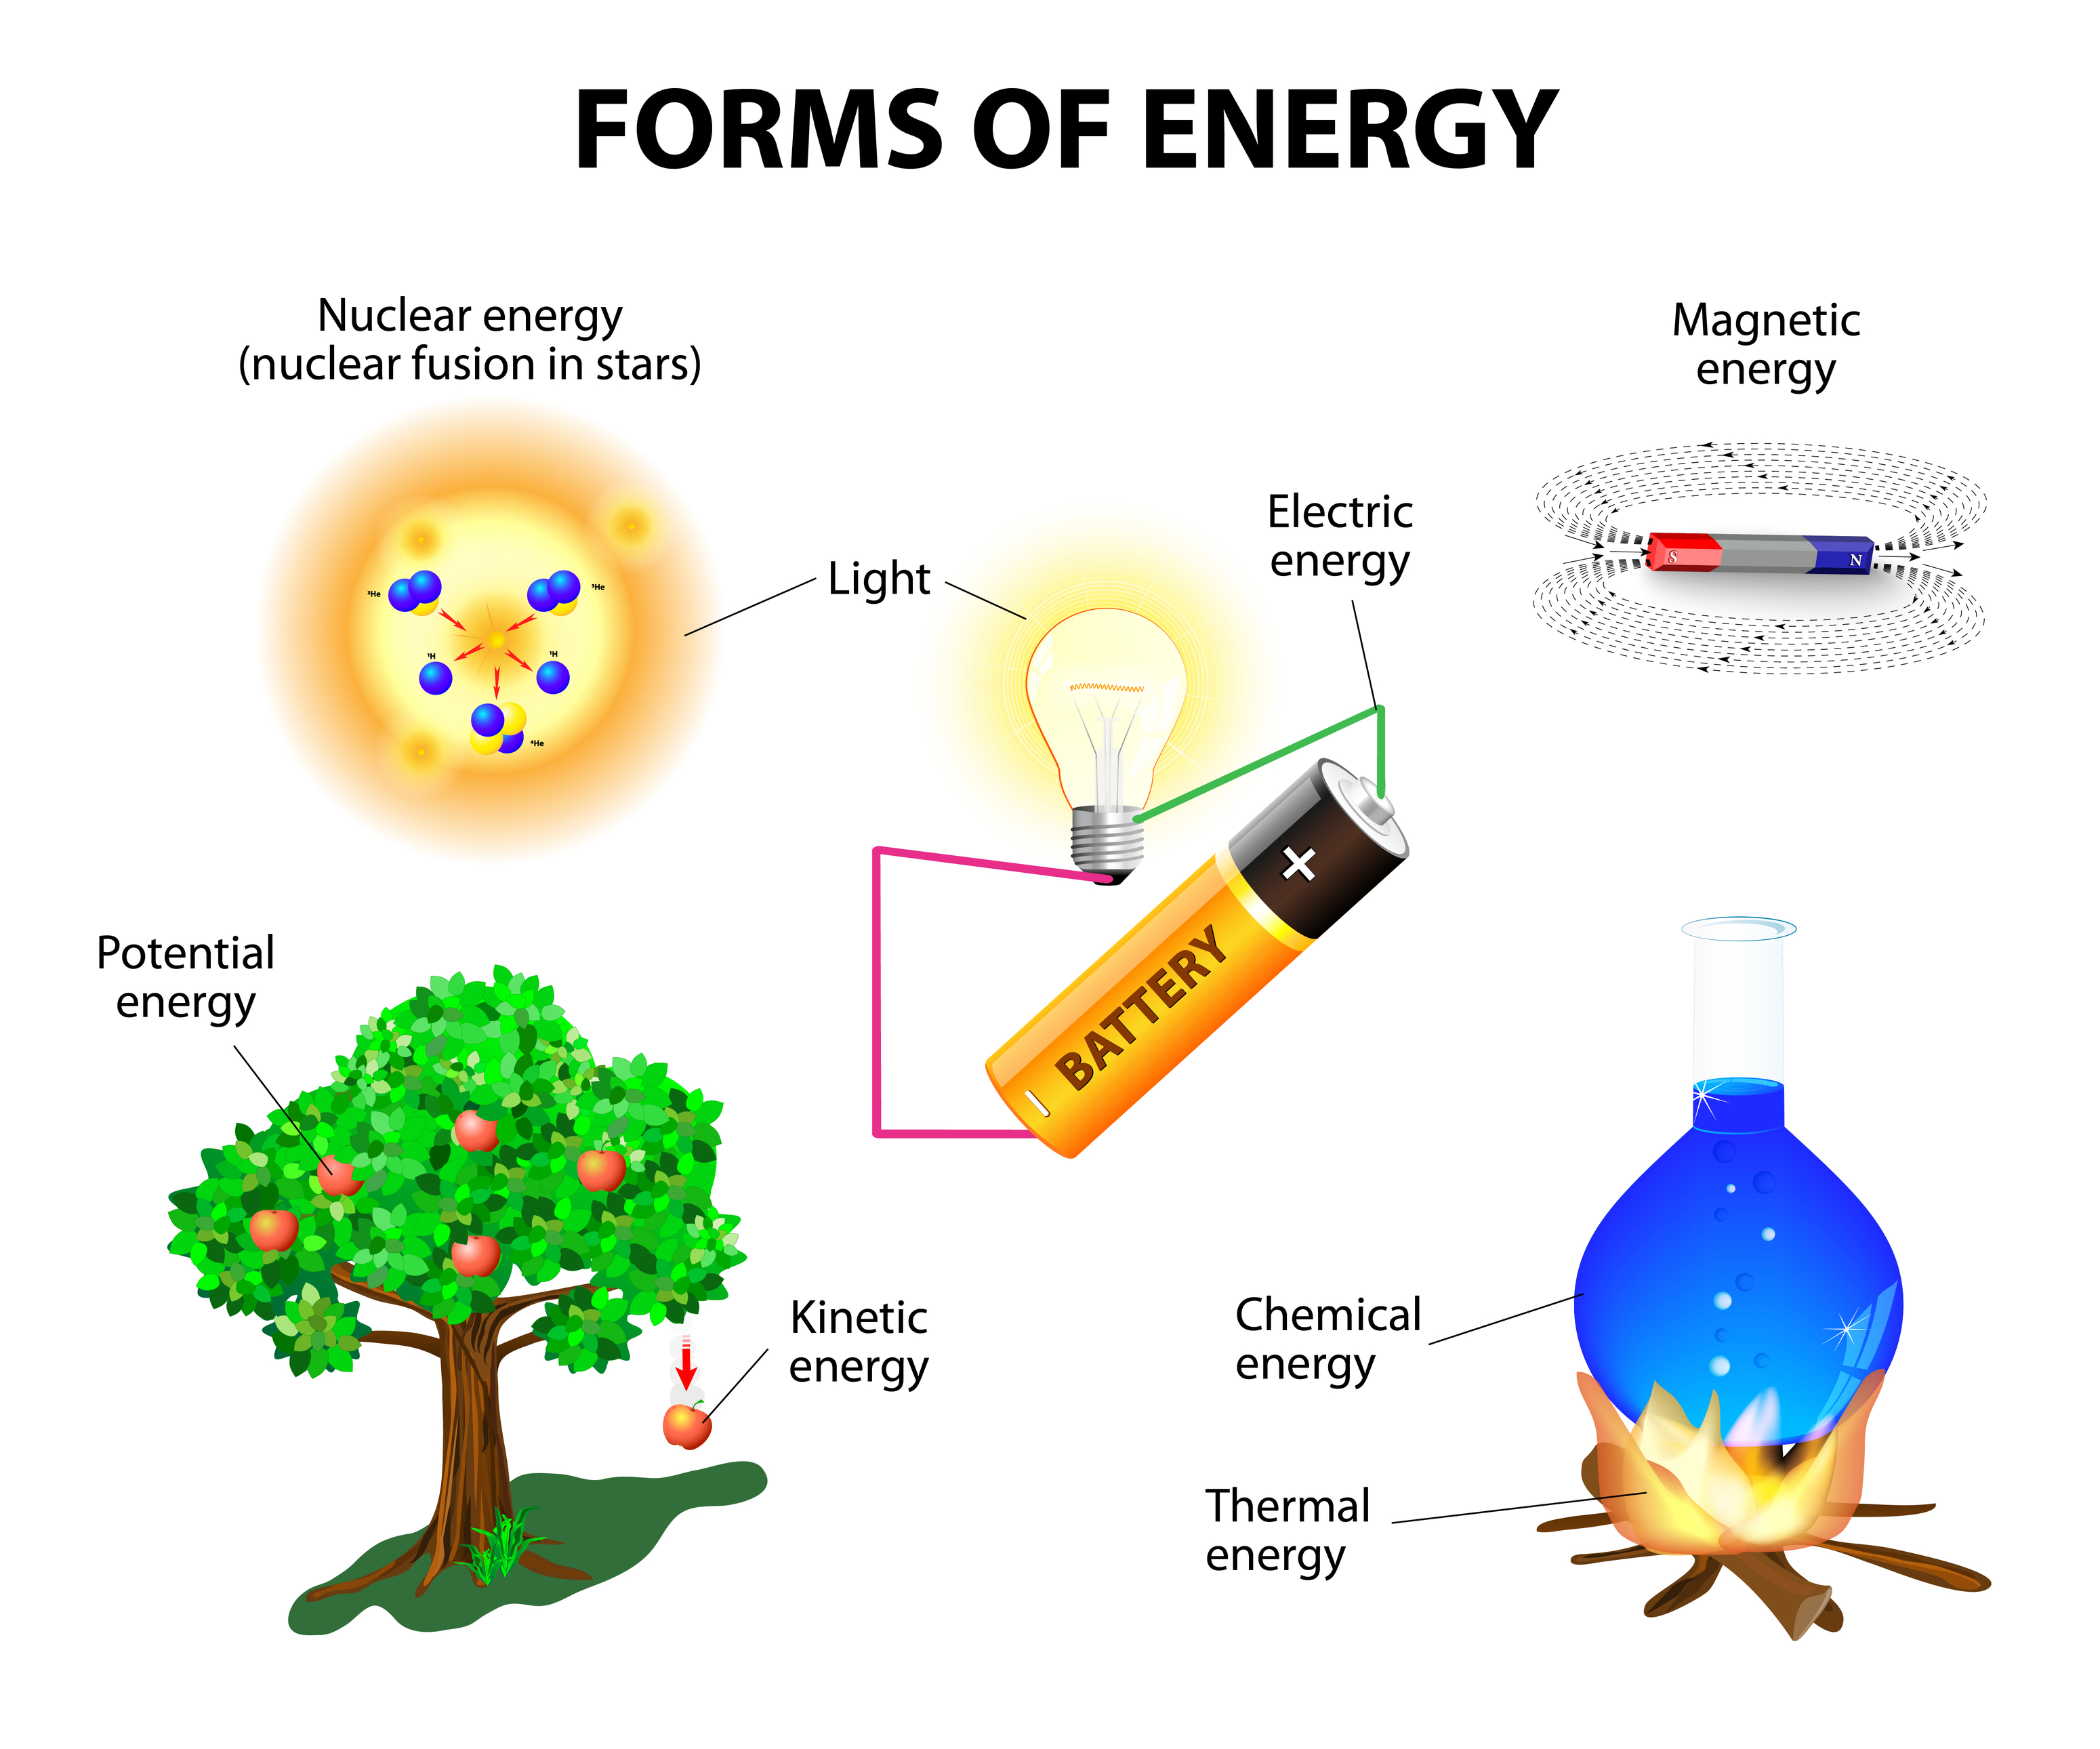 Forms Of Energy For Kids Images u0026 Pictures - Becuo